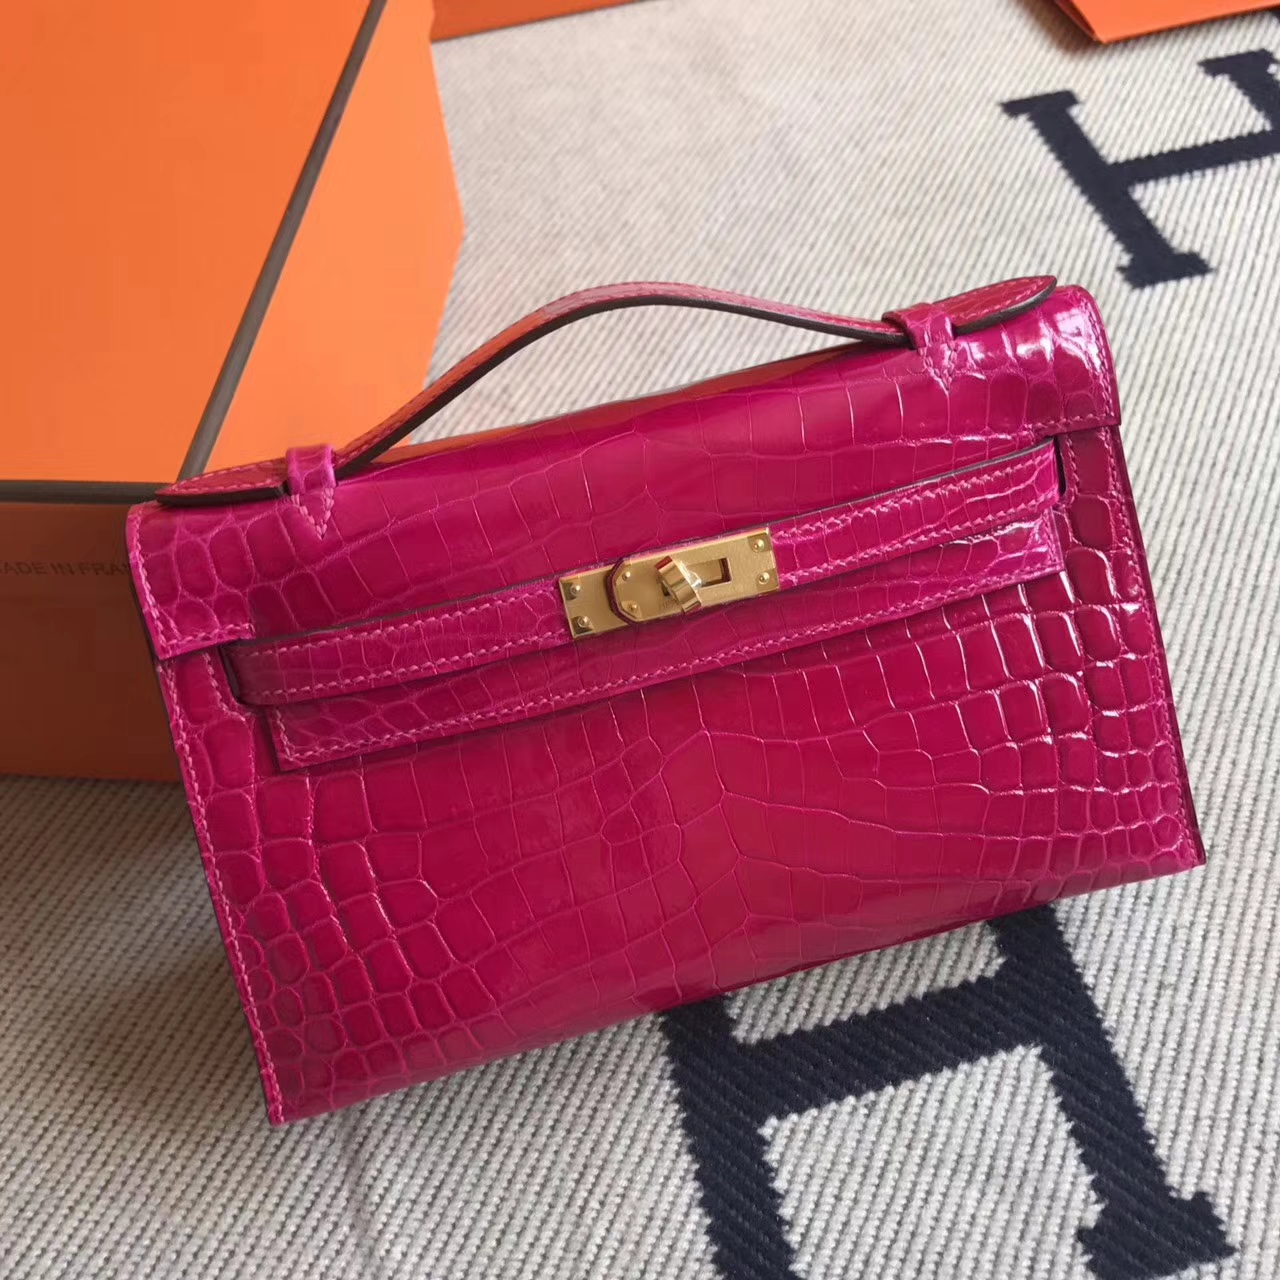 Elegant Hermes J5 Rose Scheherazade Crocodile Shiny Leather Minikelly22cm